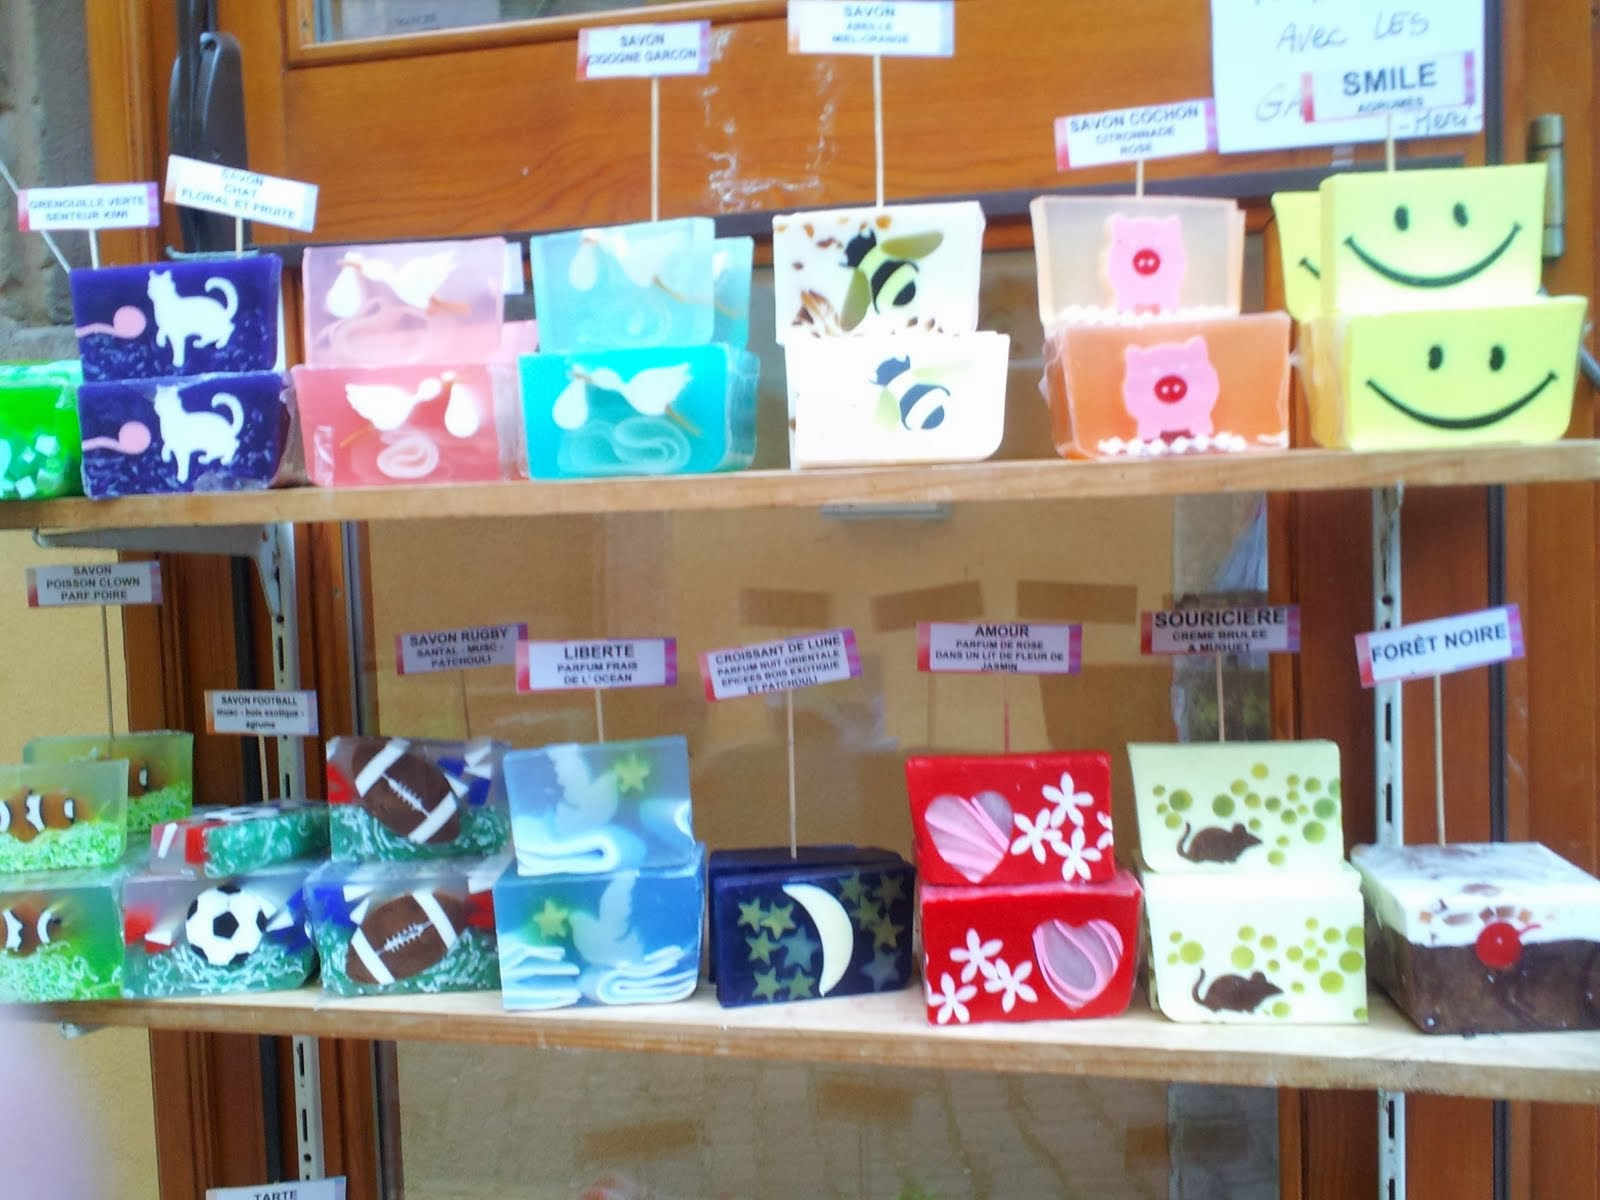 Soaps to Make you smile Swiss style